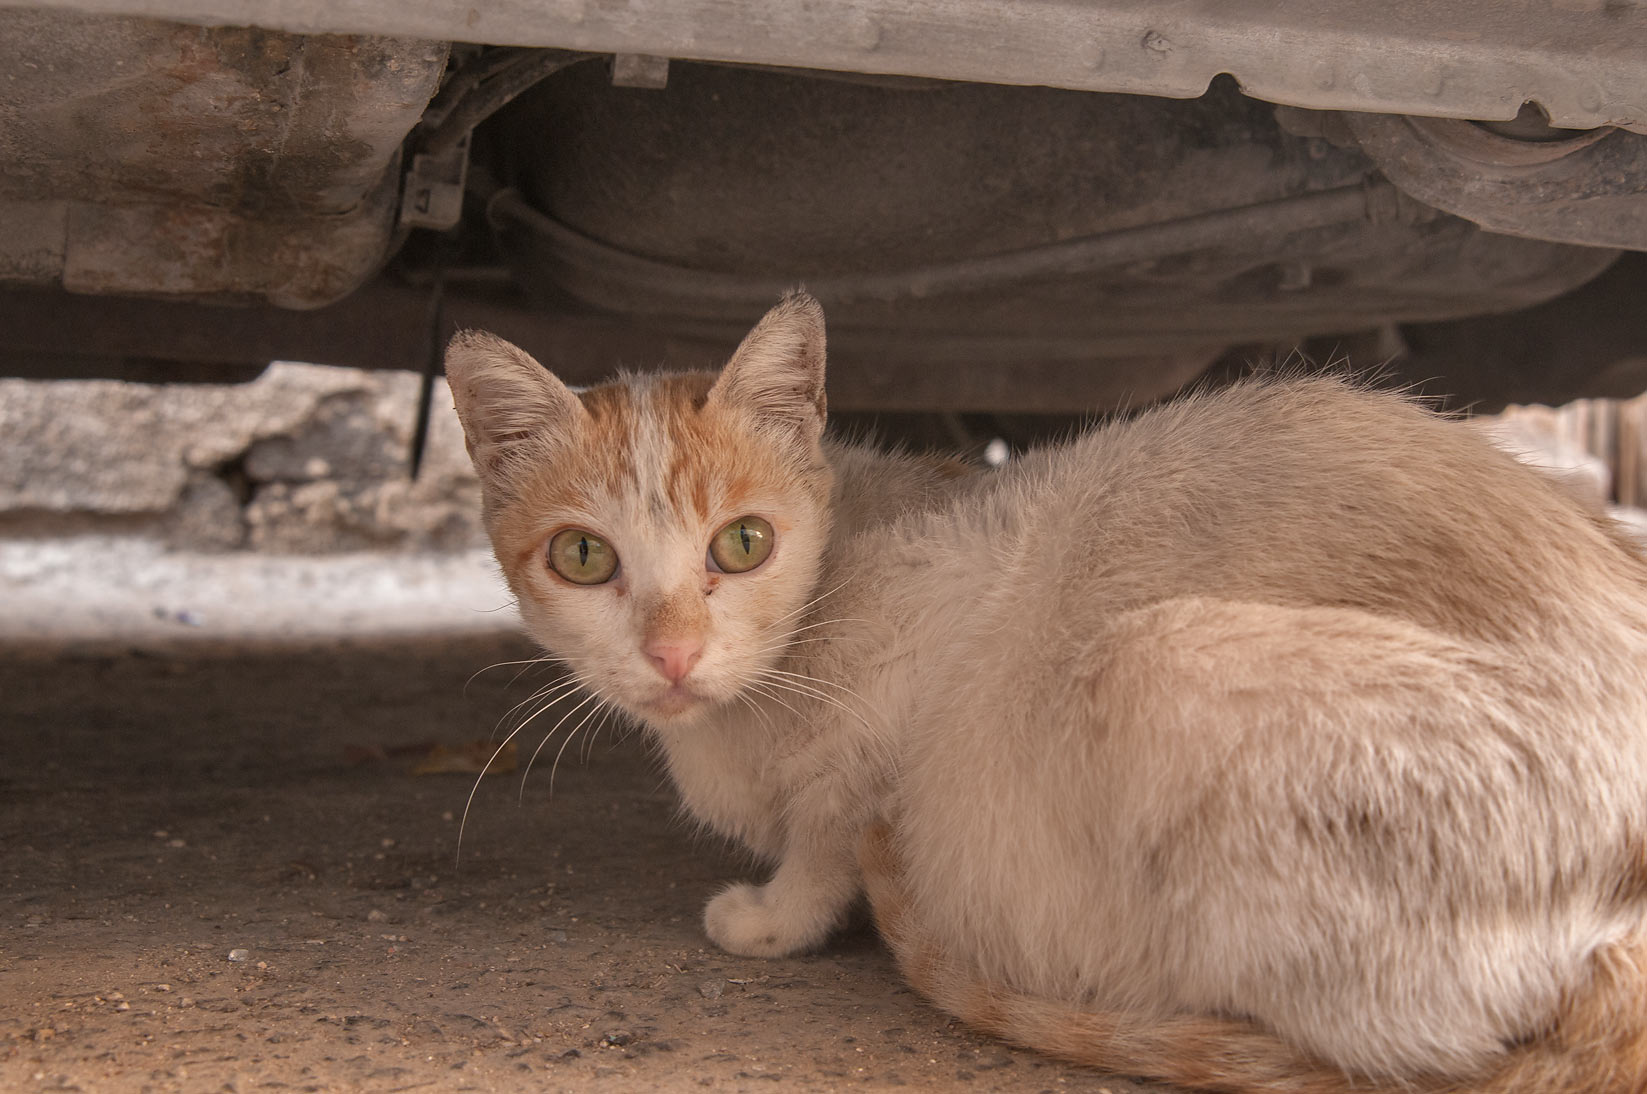 Dusty cat under a car near Al Jassasiya St., Musheirib area. Doha, Qatar